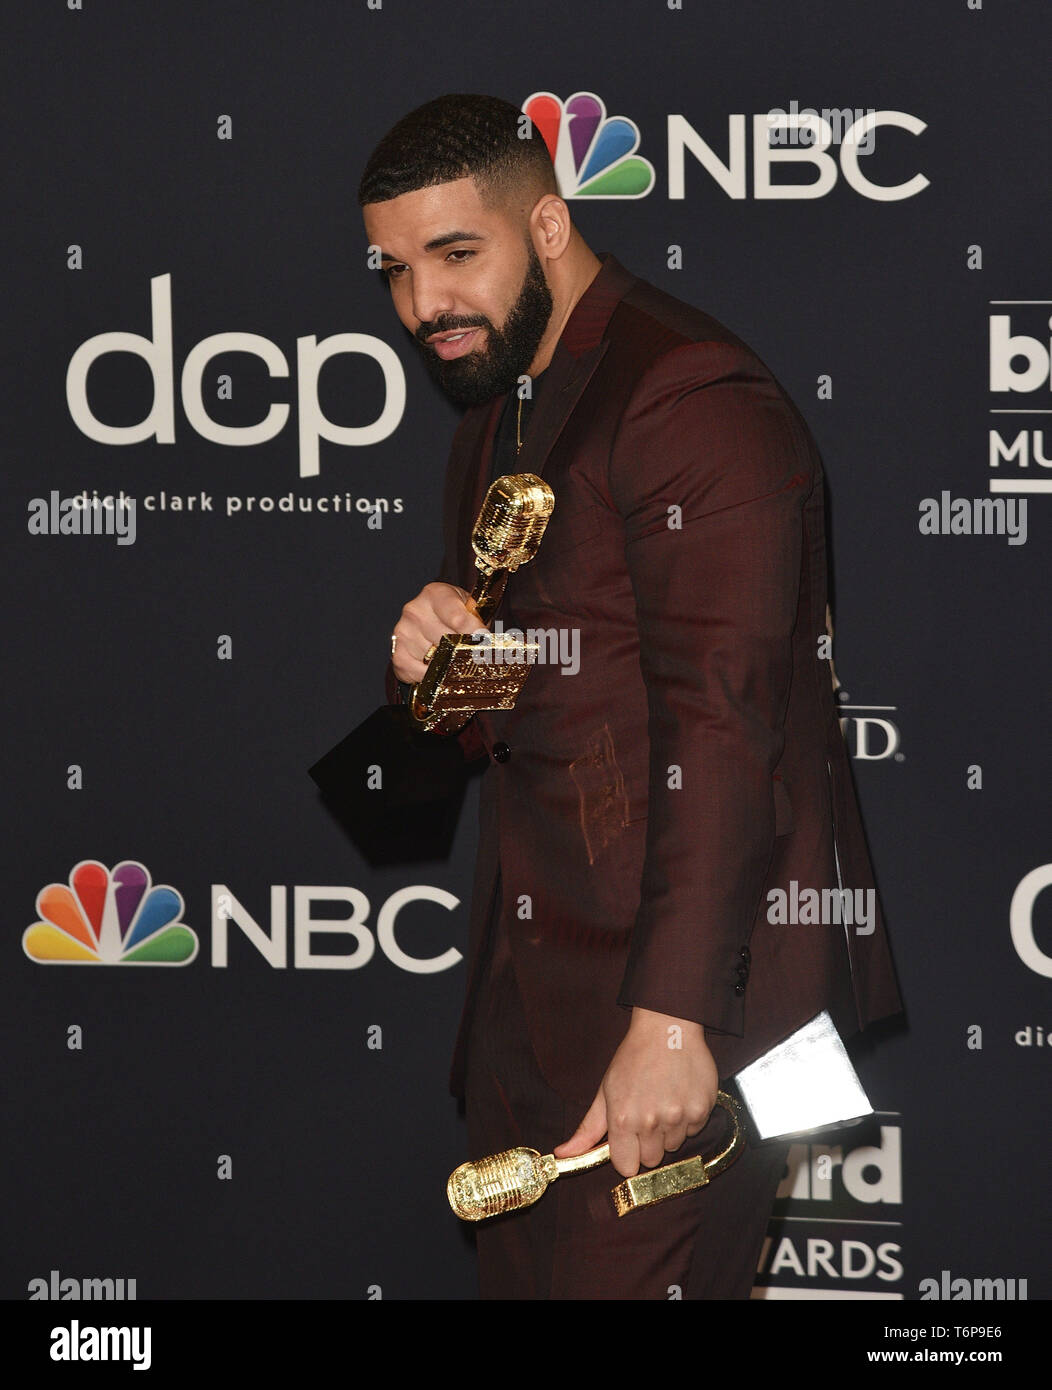 Las Vegas, NV, USA  1st May, 2019  Drake poses with the awards for